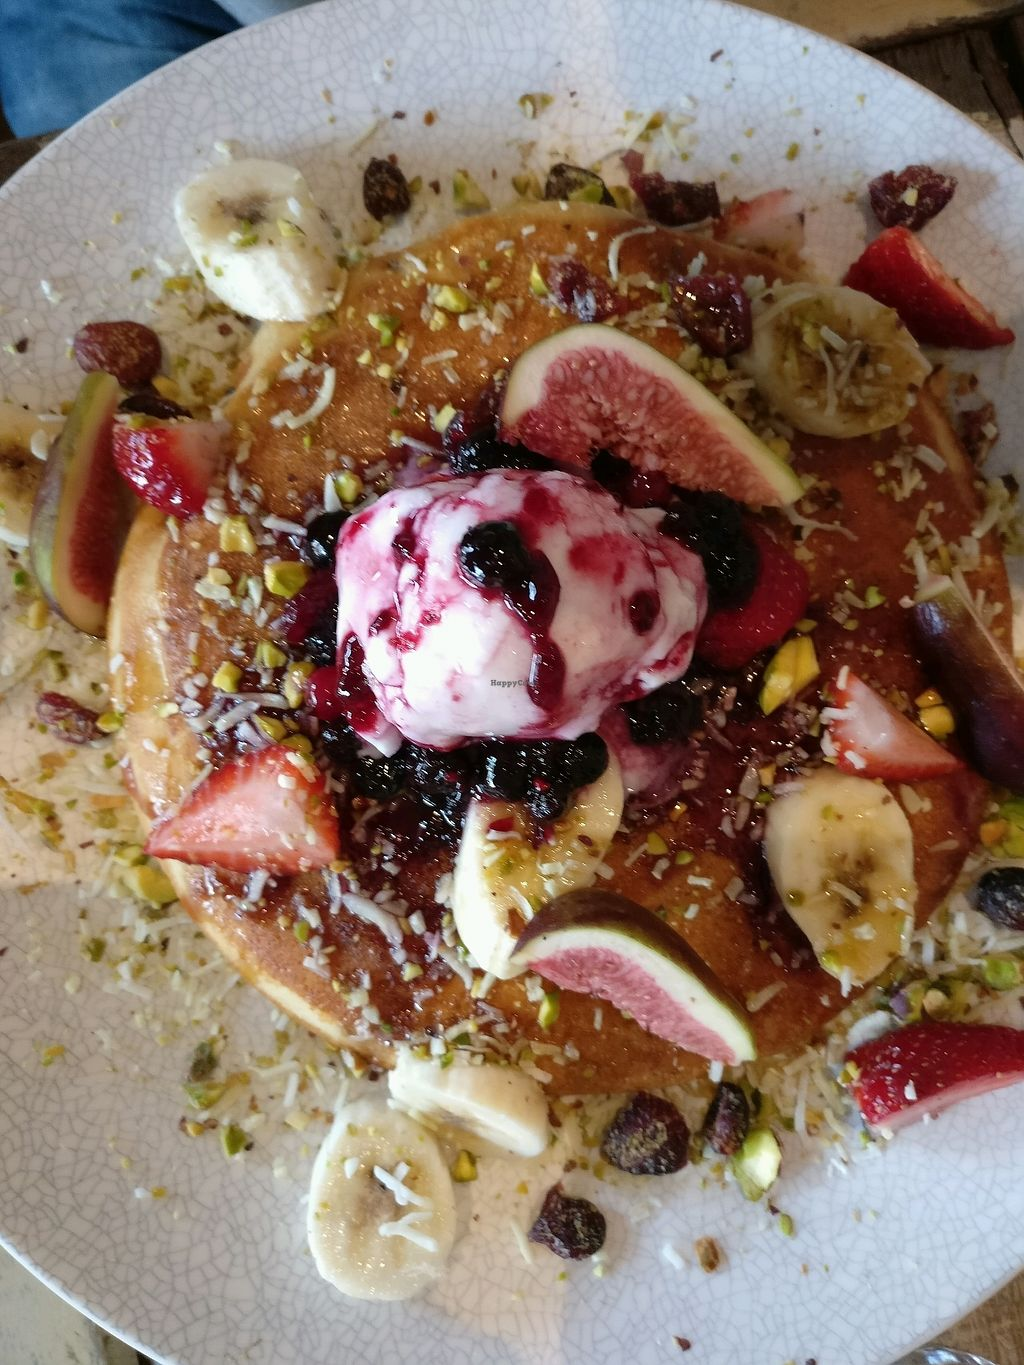 """Photo of Dad and Dave's Cafe  by <a href=""""/members/profile/Aloo"""">Aloo</a> <br/>vegan pancakes <br/> March 16, 2018  - <a href='/contact/abuse/image/47747/371524'>Report</a>"""